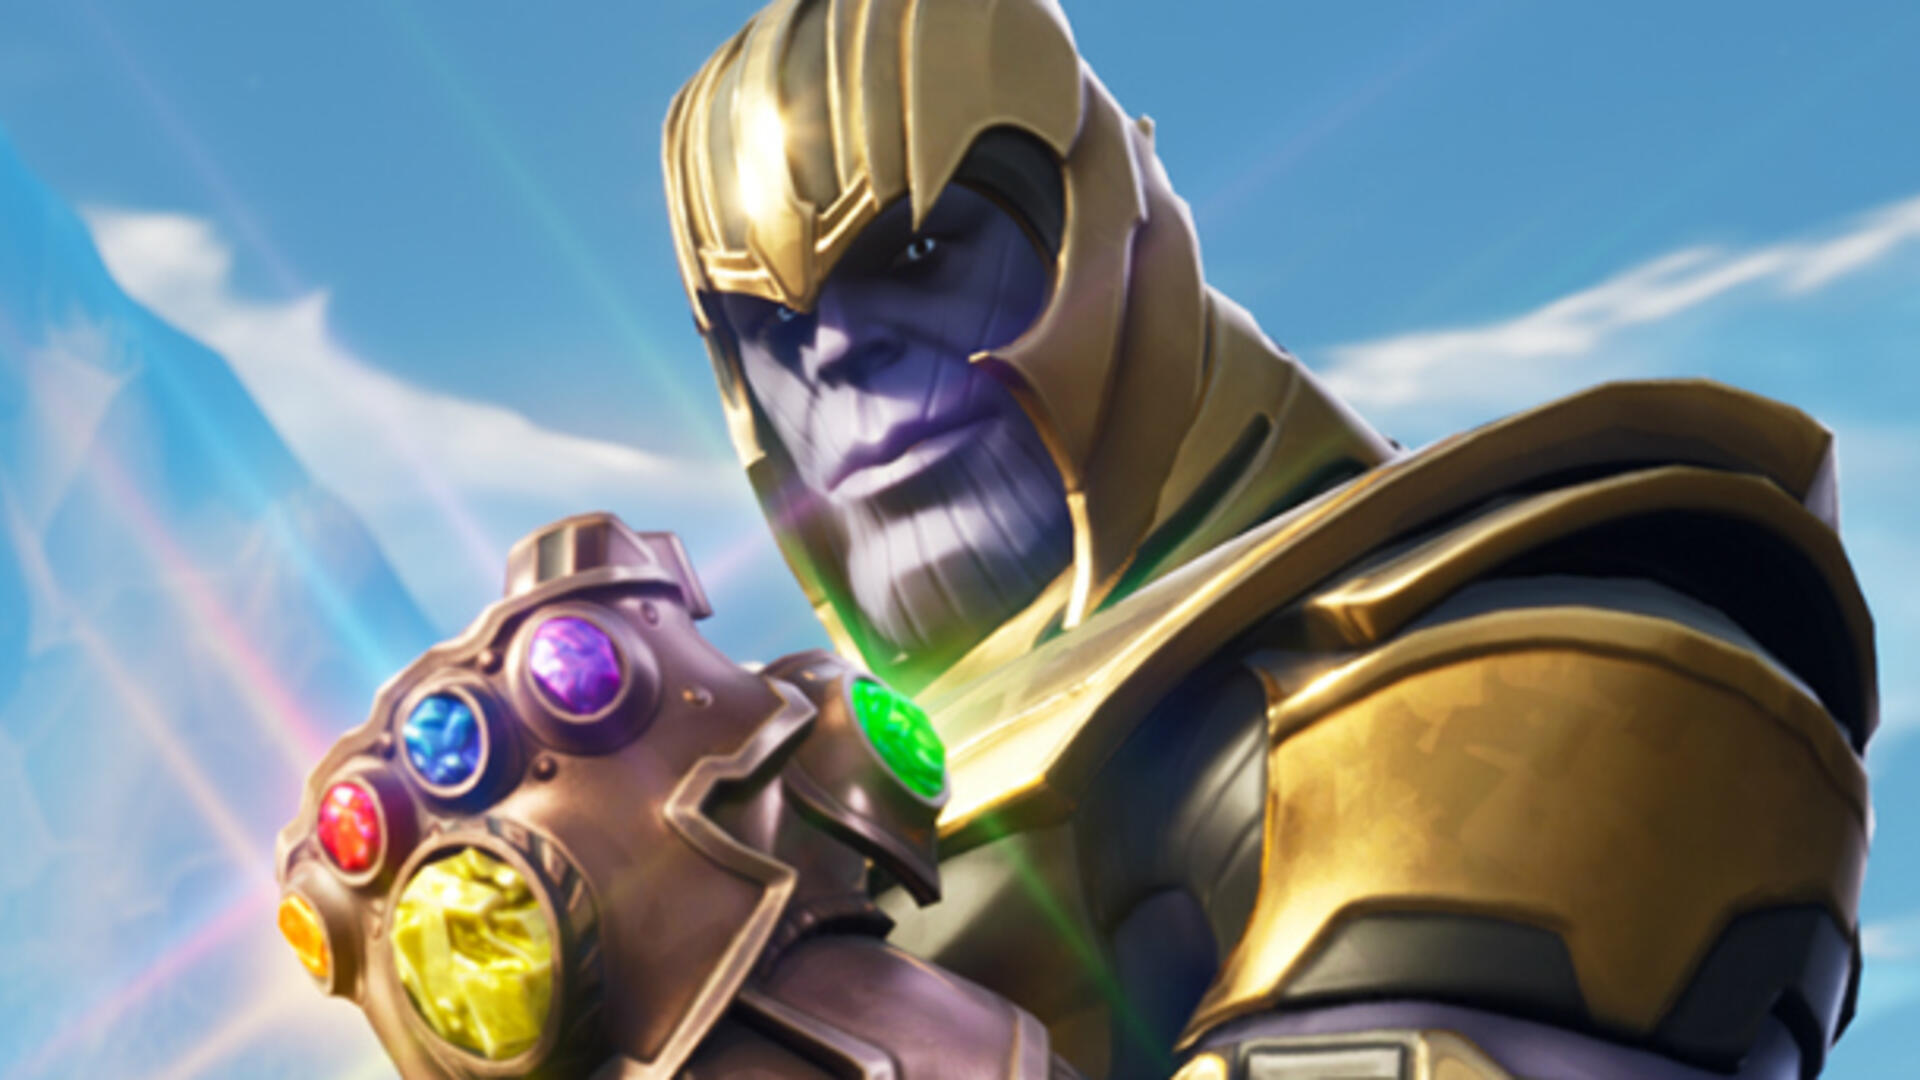 Epic Makes Fortnite's Thanos More Powerful, But Less Healthy